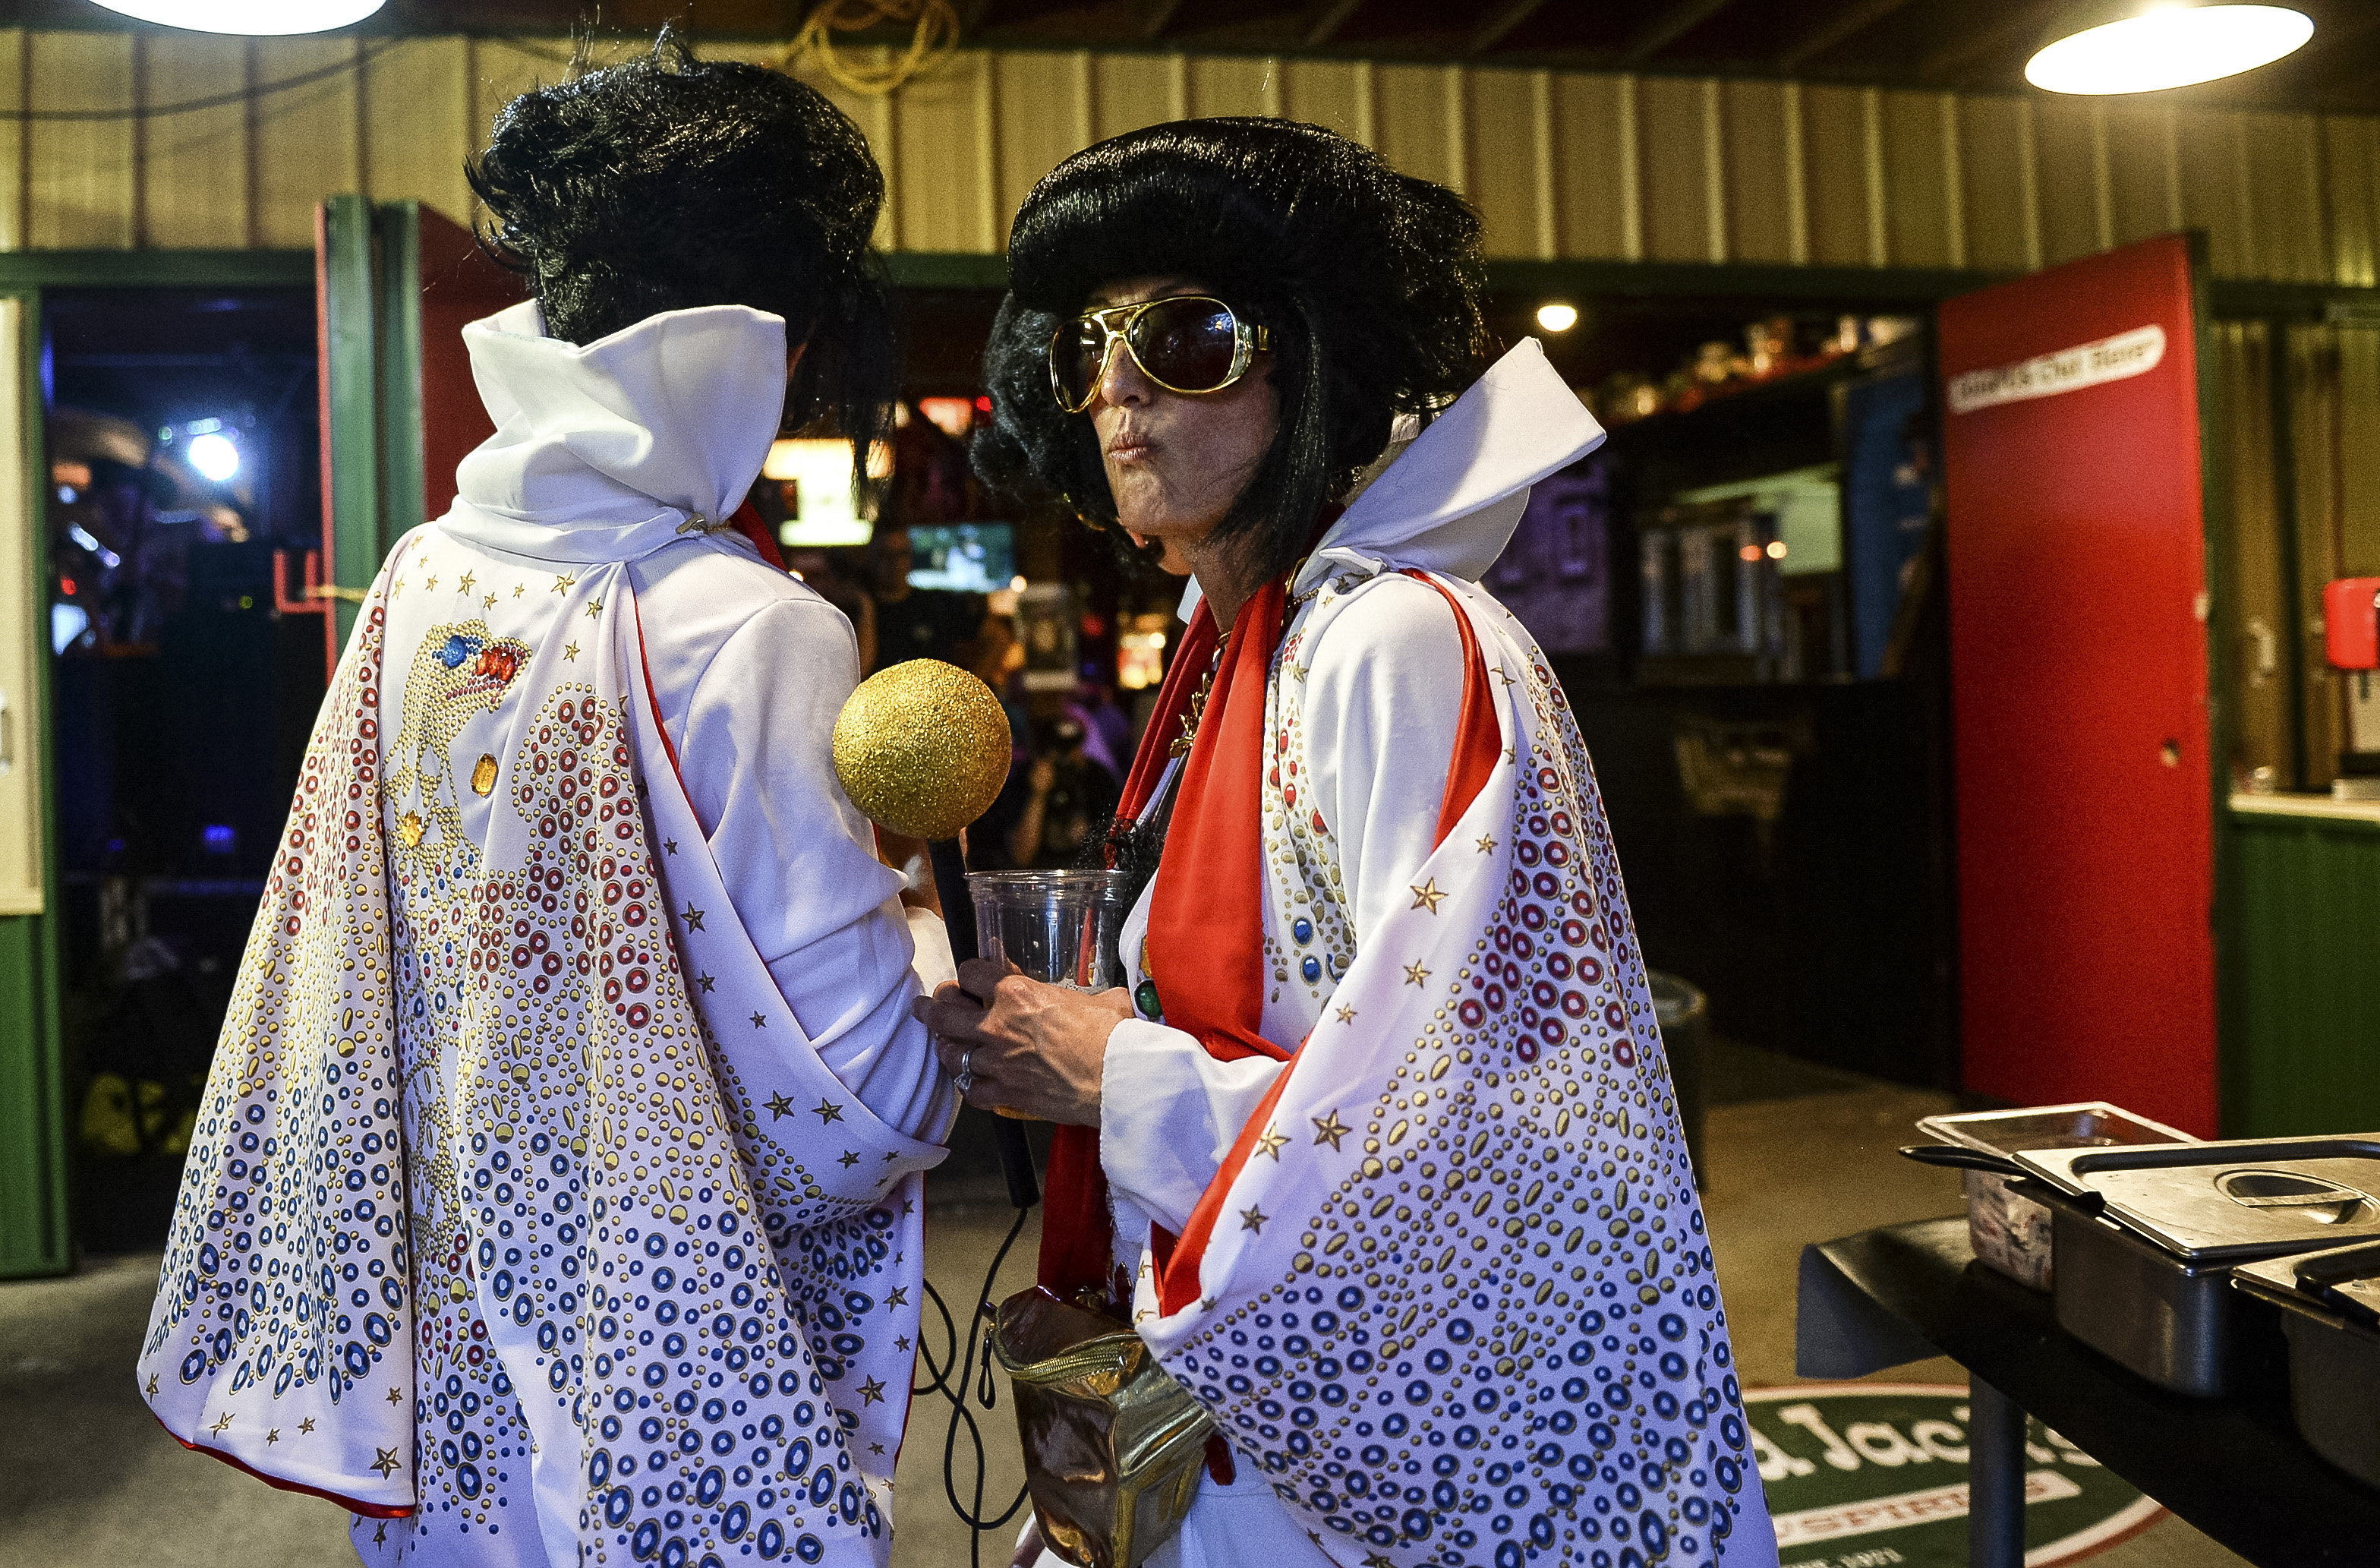 UNITED STATES - AUGUST 16: People dressed up as Elvis Presley walk around at the Iowa State Fair on Friday August 16, 2019. (Photo by Caroline Brehman/CQ Roll Call)